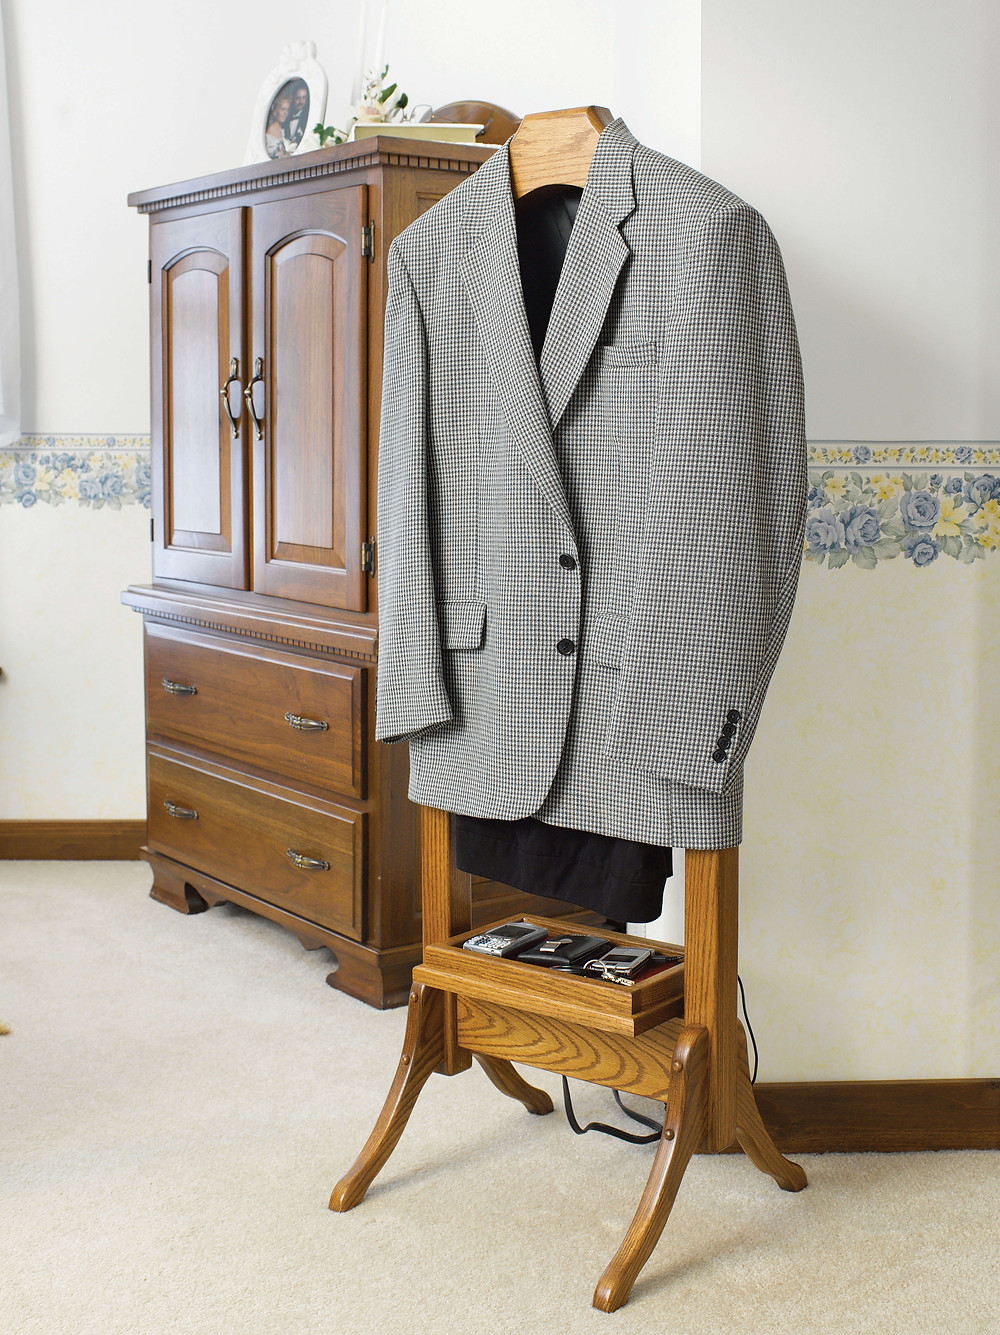 The Suit Valet by Country Corner with power strip is shown in oak